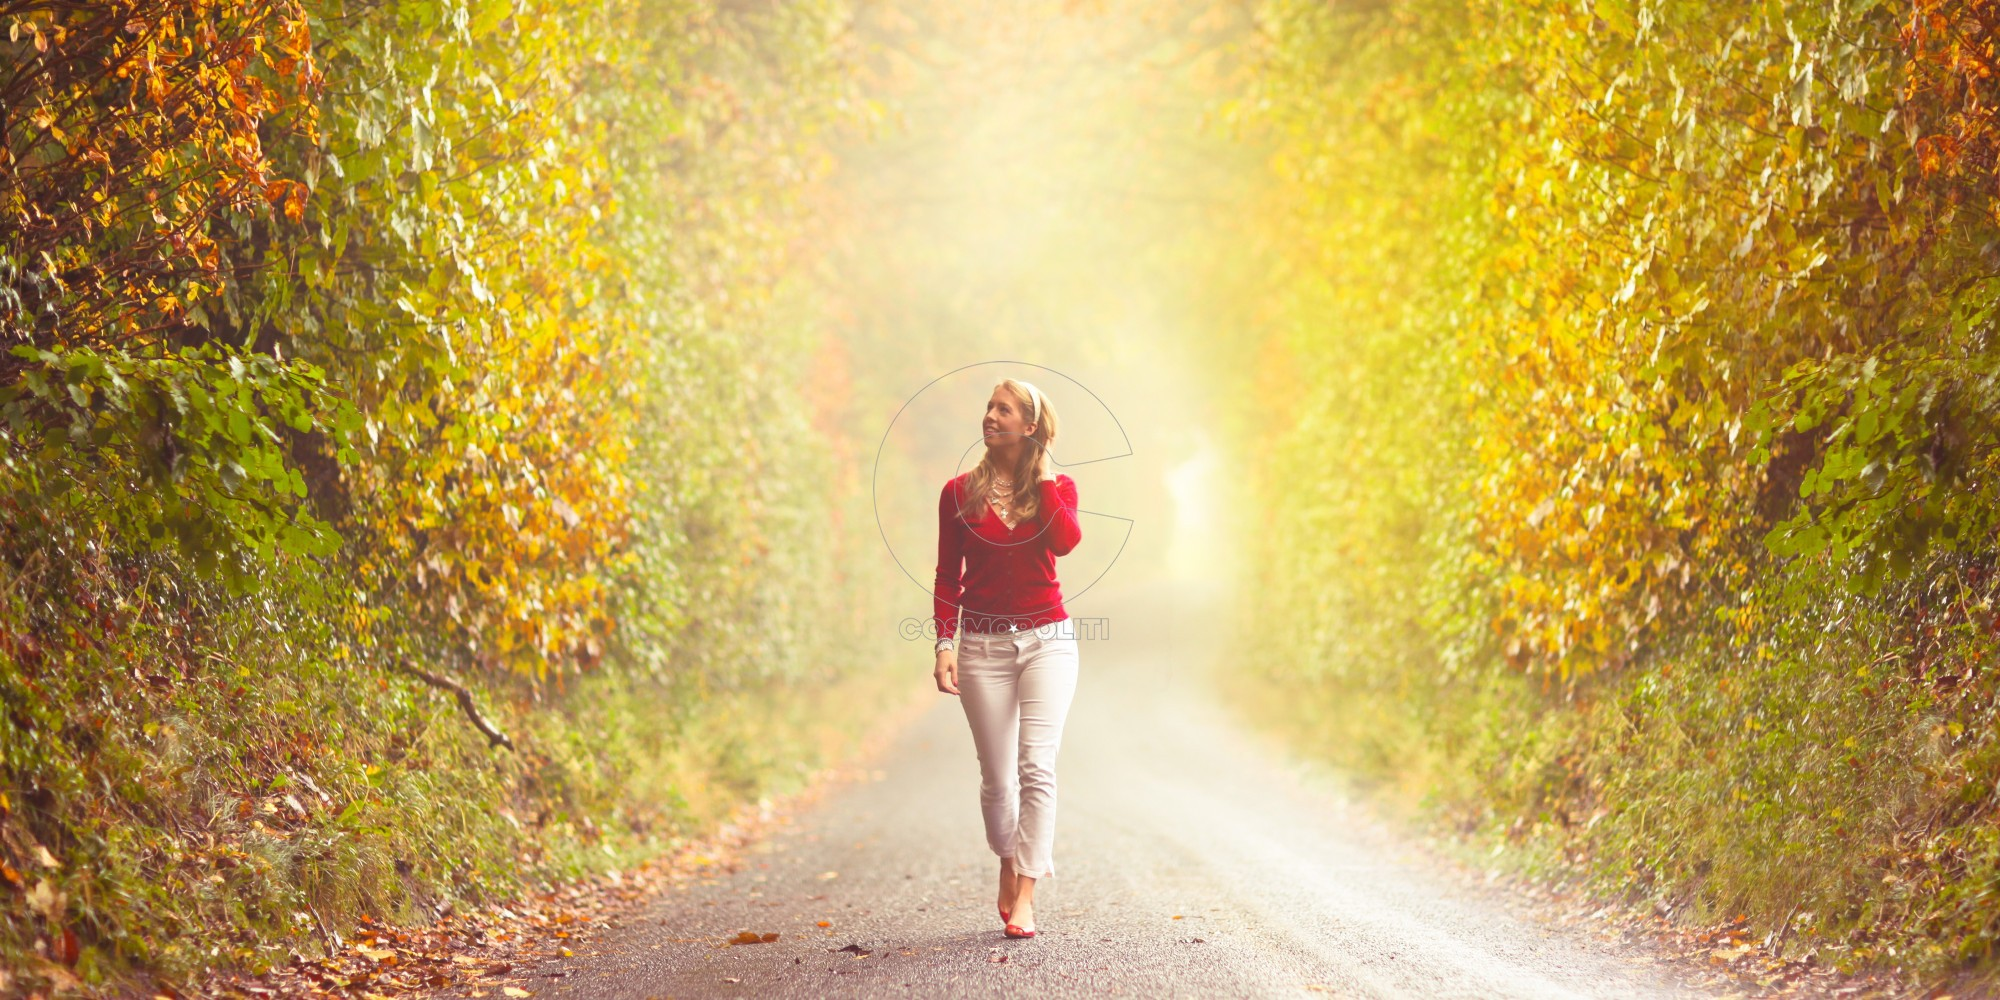 Girl walking in country road in the autumn fog